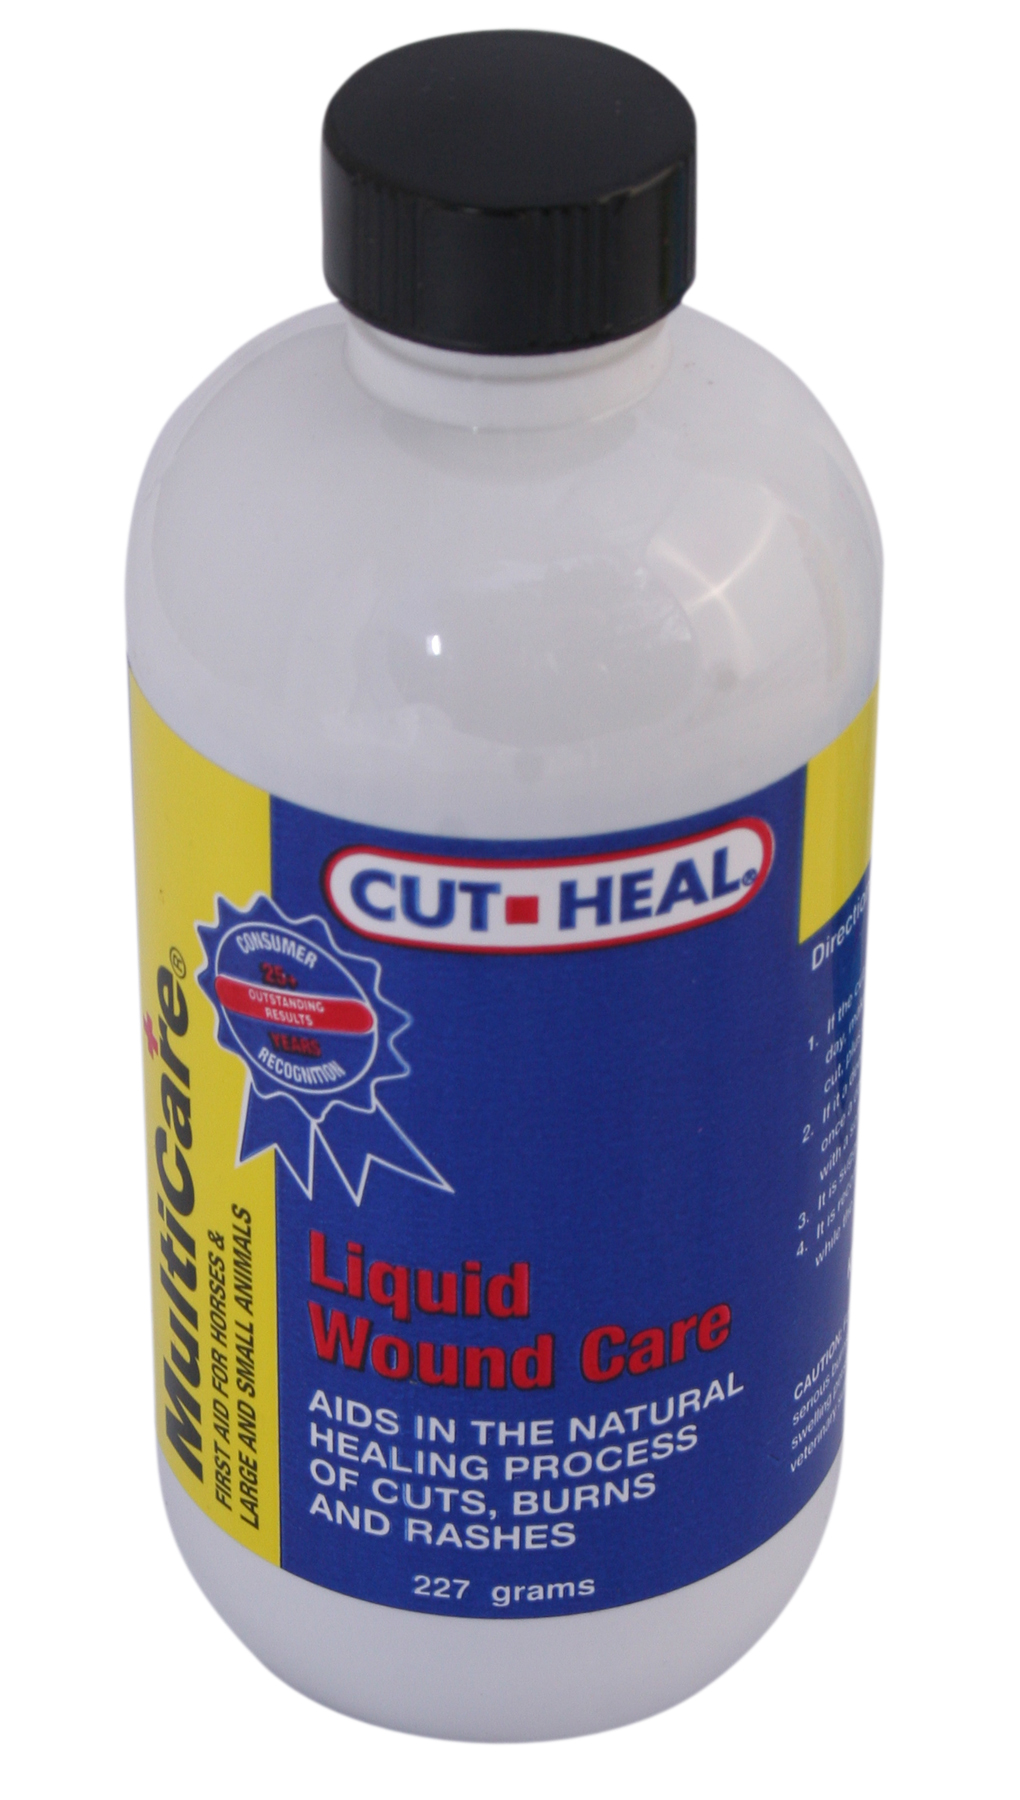 Cut Heal 4 Multi Care